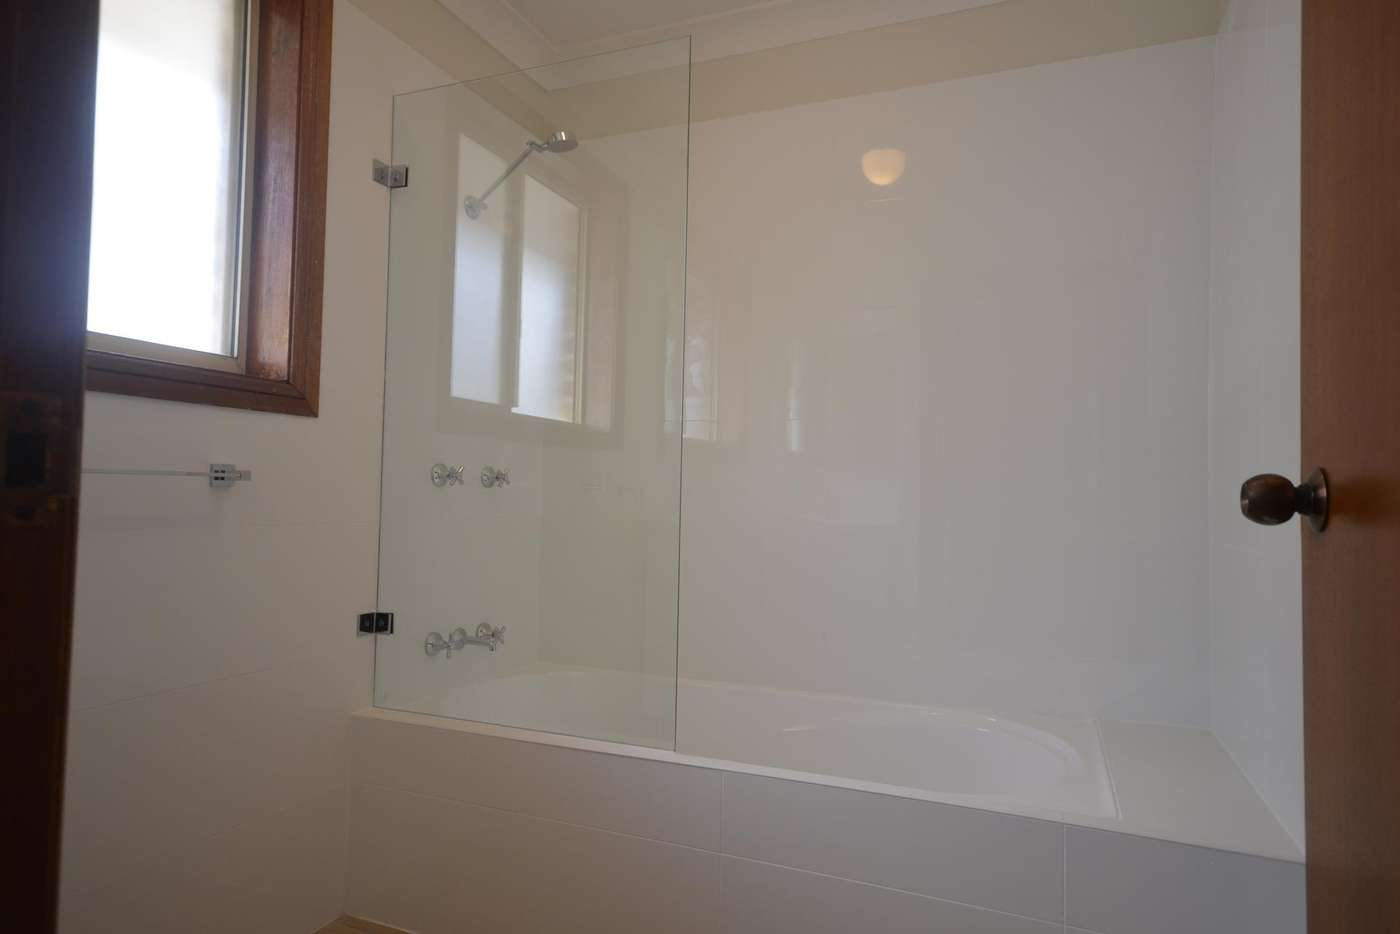 Sixth view of Homely house listing, 1/31 Palm Street, Ettalong Beach NSW 2257